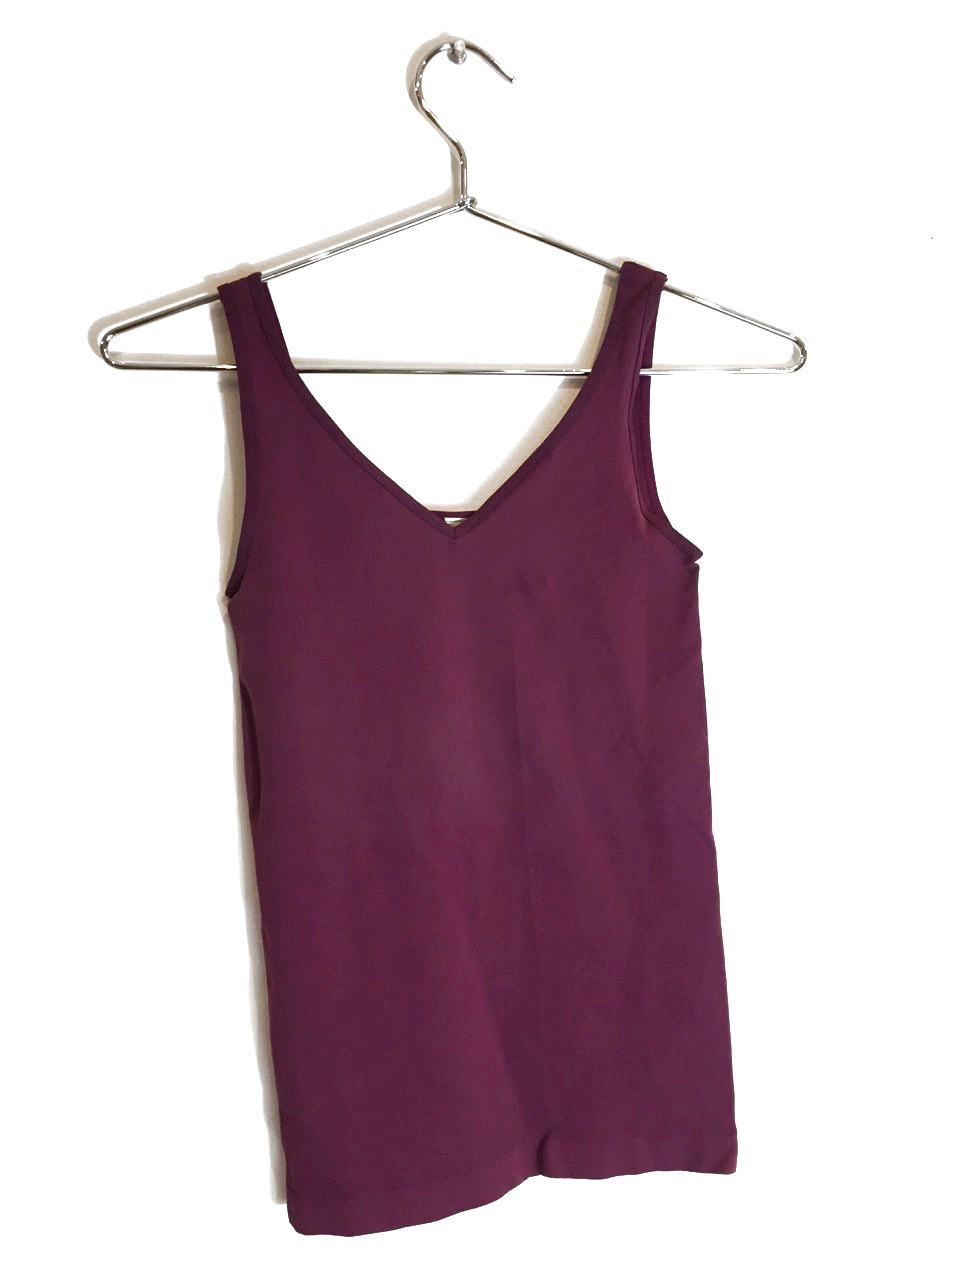 New-Anthropologie-By-Eloise-Seamless-Reversible-Soft-Layering-Tank-Top-Cami-24 thumbnail 5